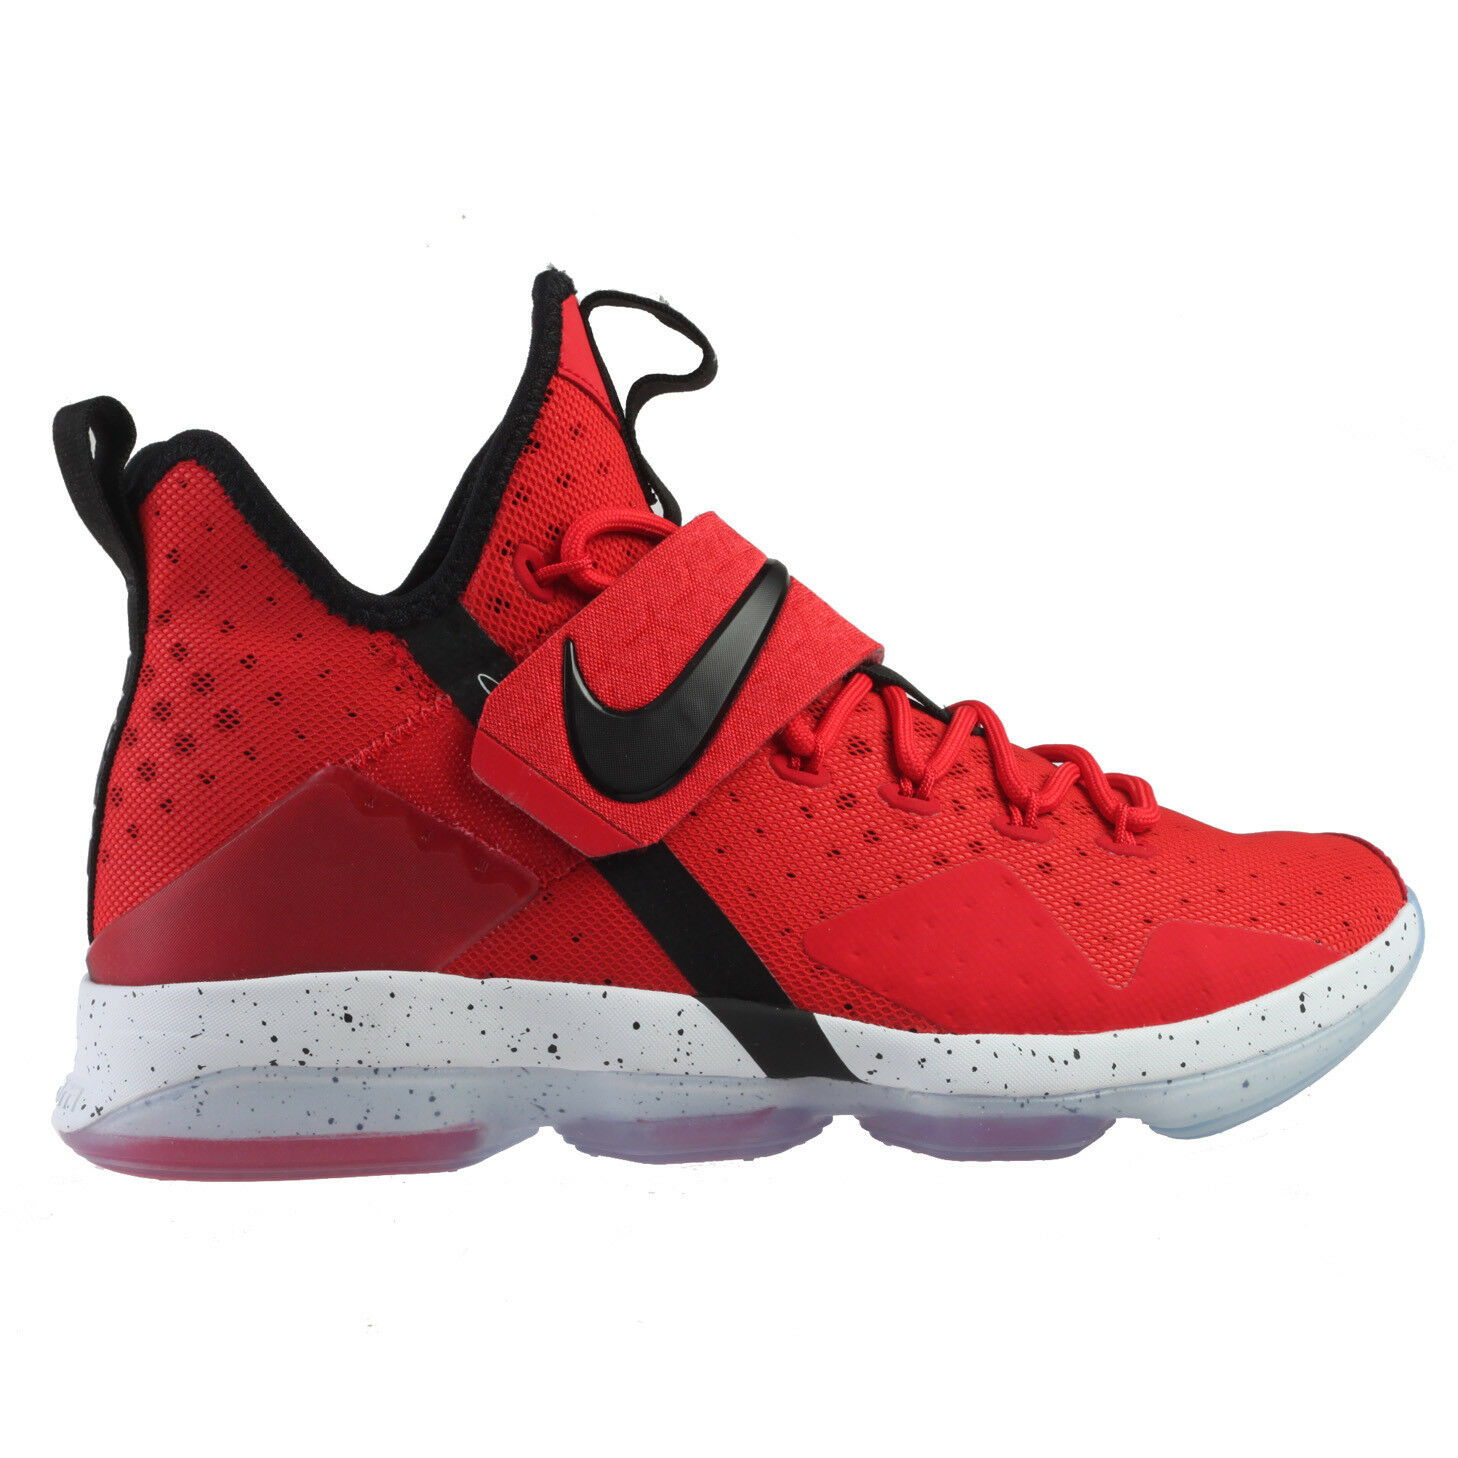 Nike Lebron 14 XIV Mens 852405-600 University Red Black Basketball Shoes Sz 10.5 New shoes for men and women, limited time discount